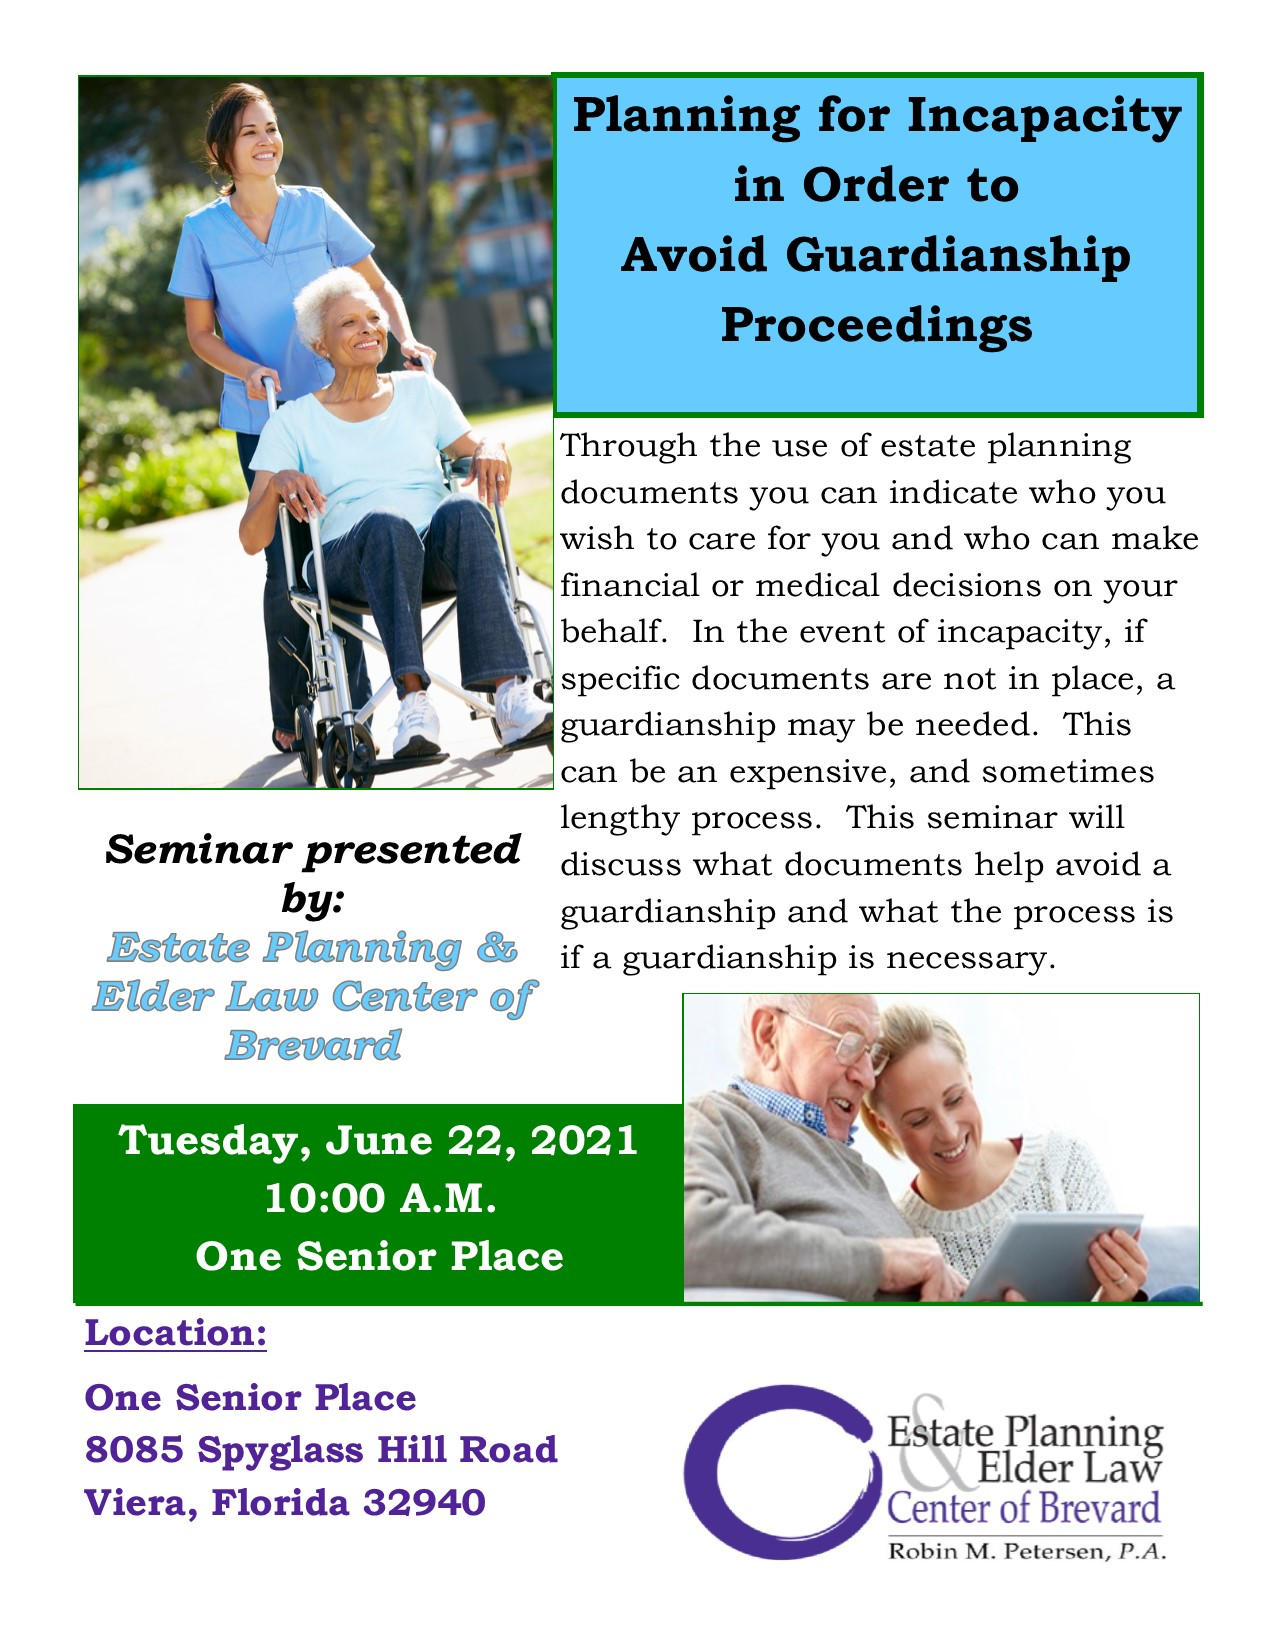 Planning for Incapacity in Order to Avoid Guardianship Proceedings presented by Estate Planning and Elder Law Center of Brevard